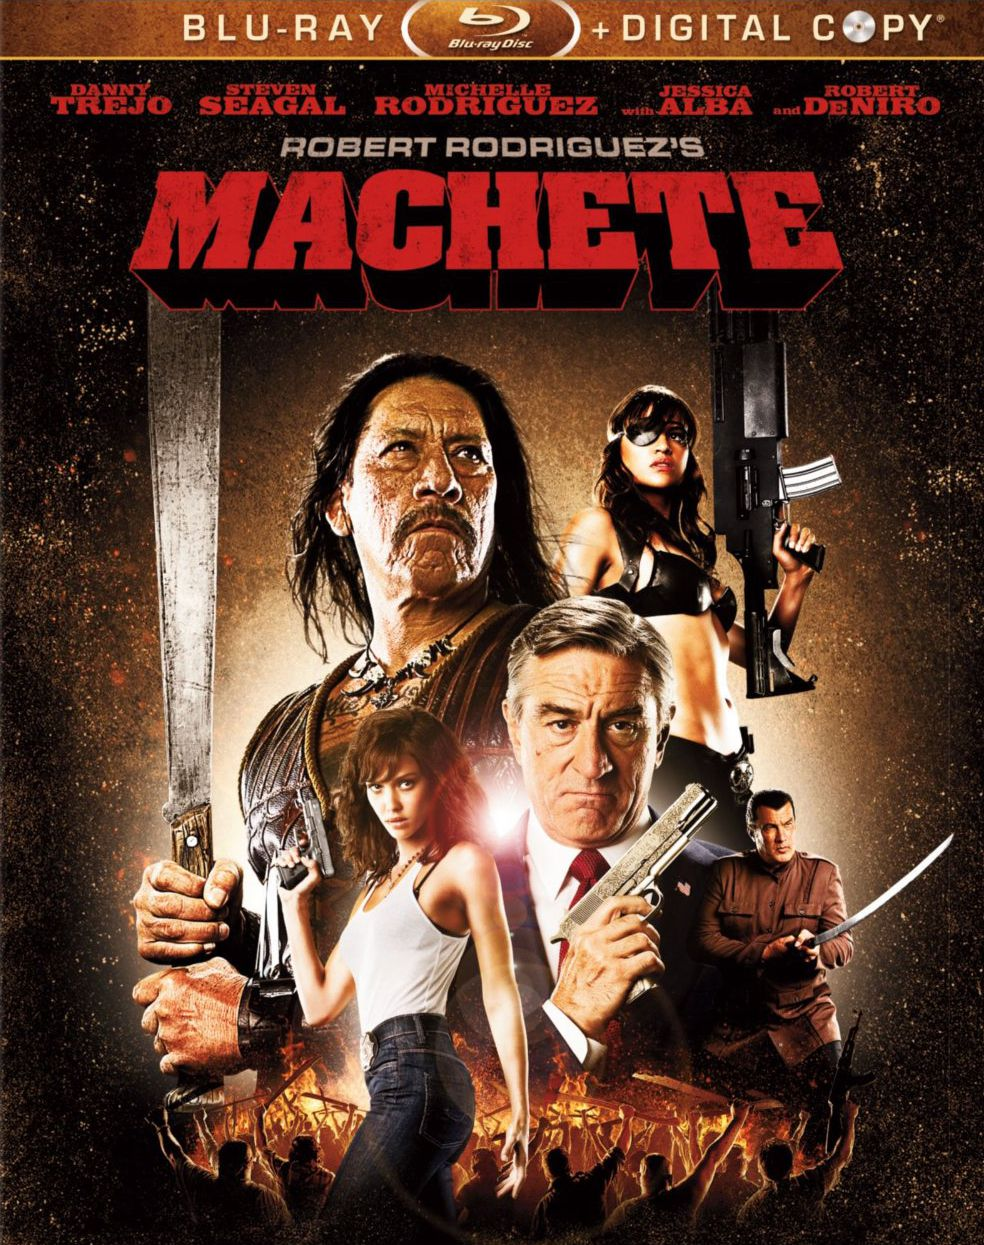 Publicity still for Machete